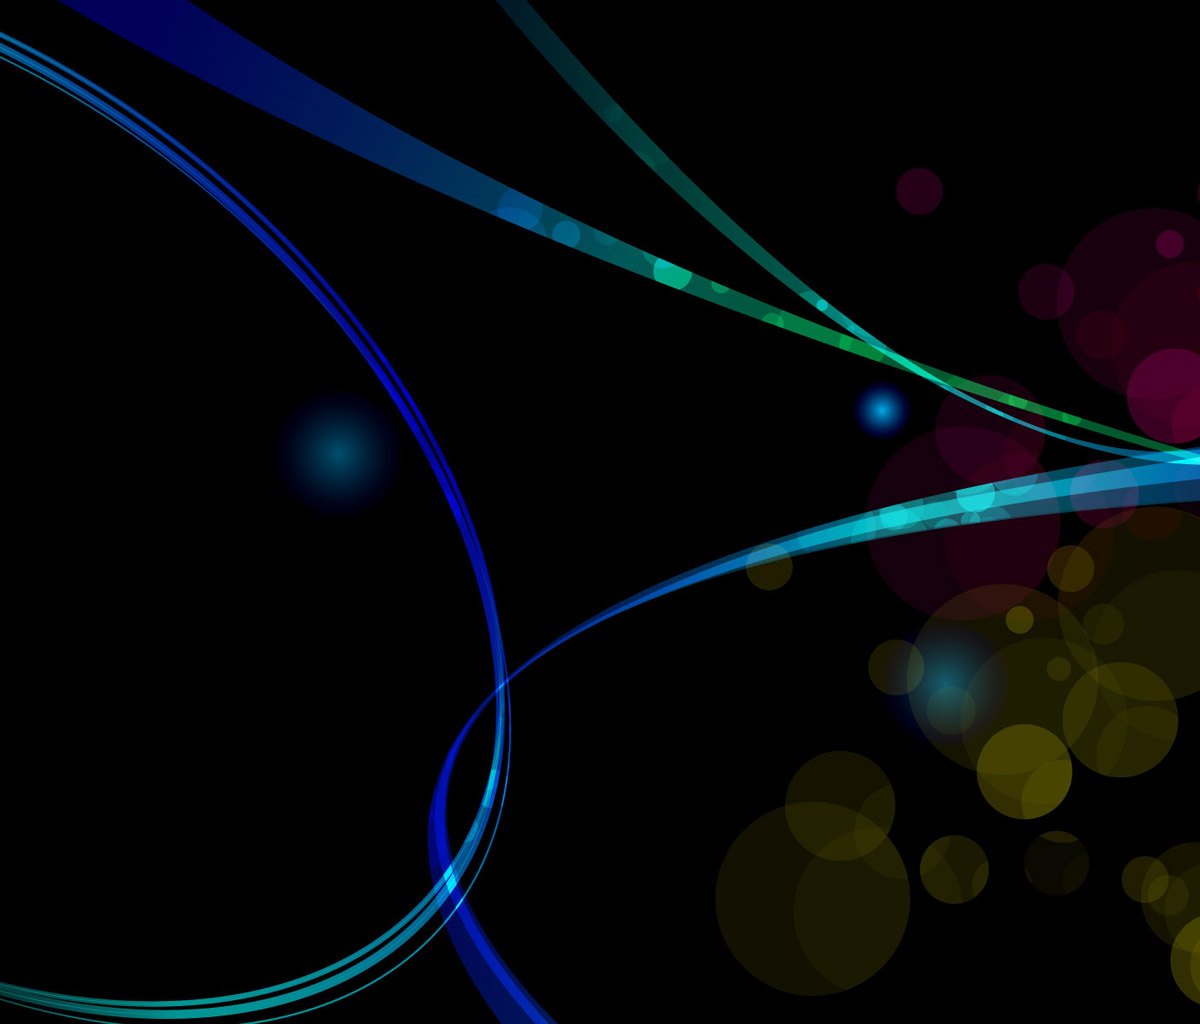 Abstract Wallpaper for Tablet PC Background ~ Tablet PC Wallpapers